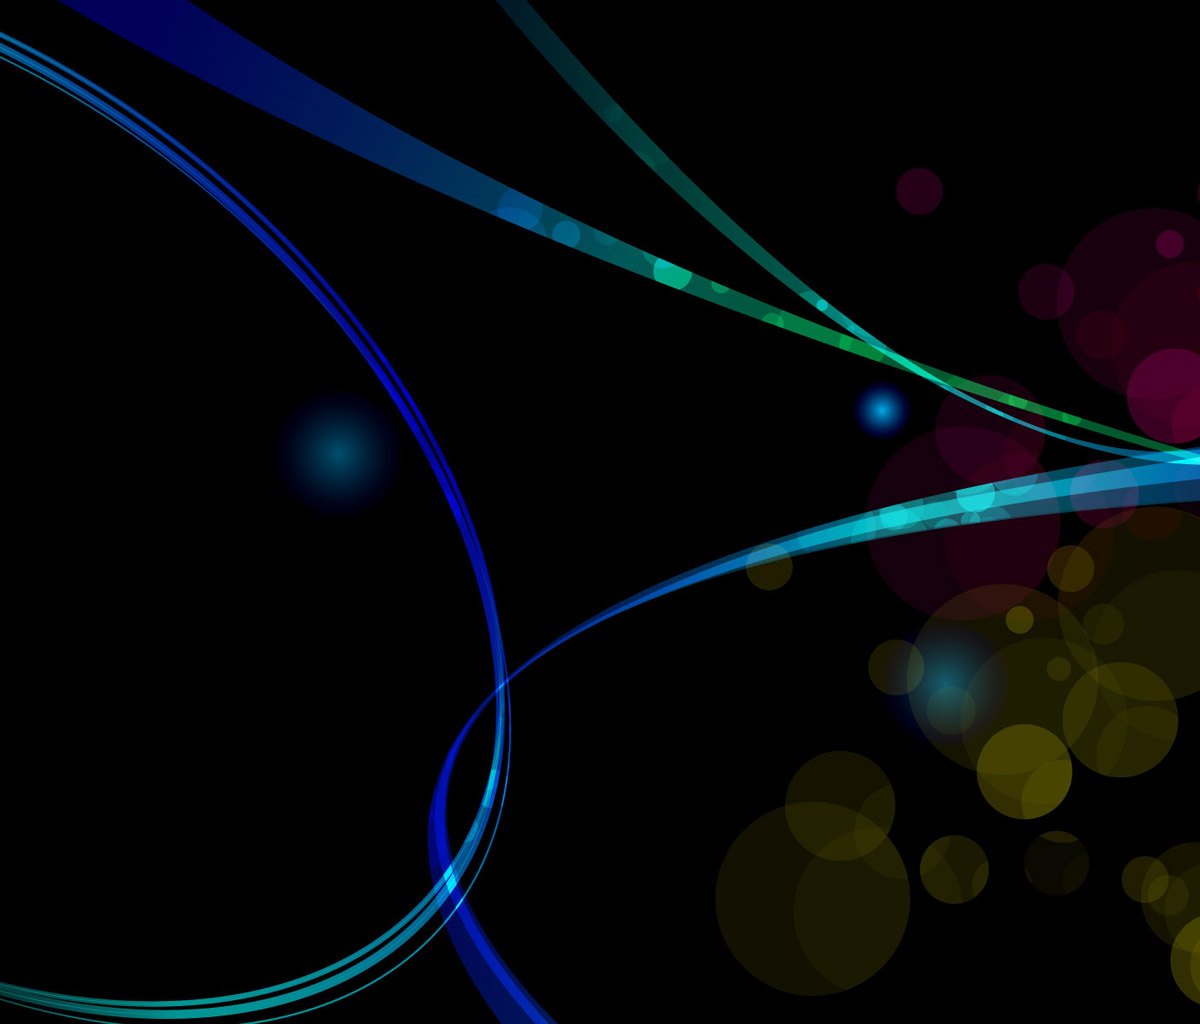 Abstract Wallpaper for Tablet PC Background ~ Tablet PC Wallpapers